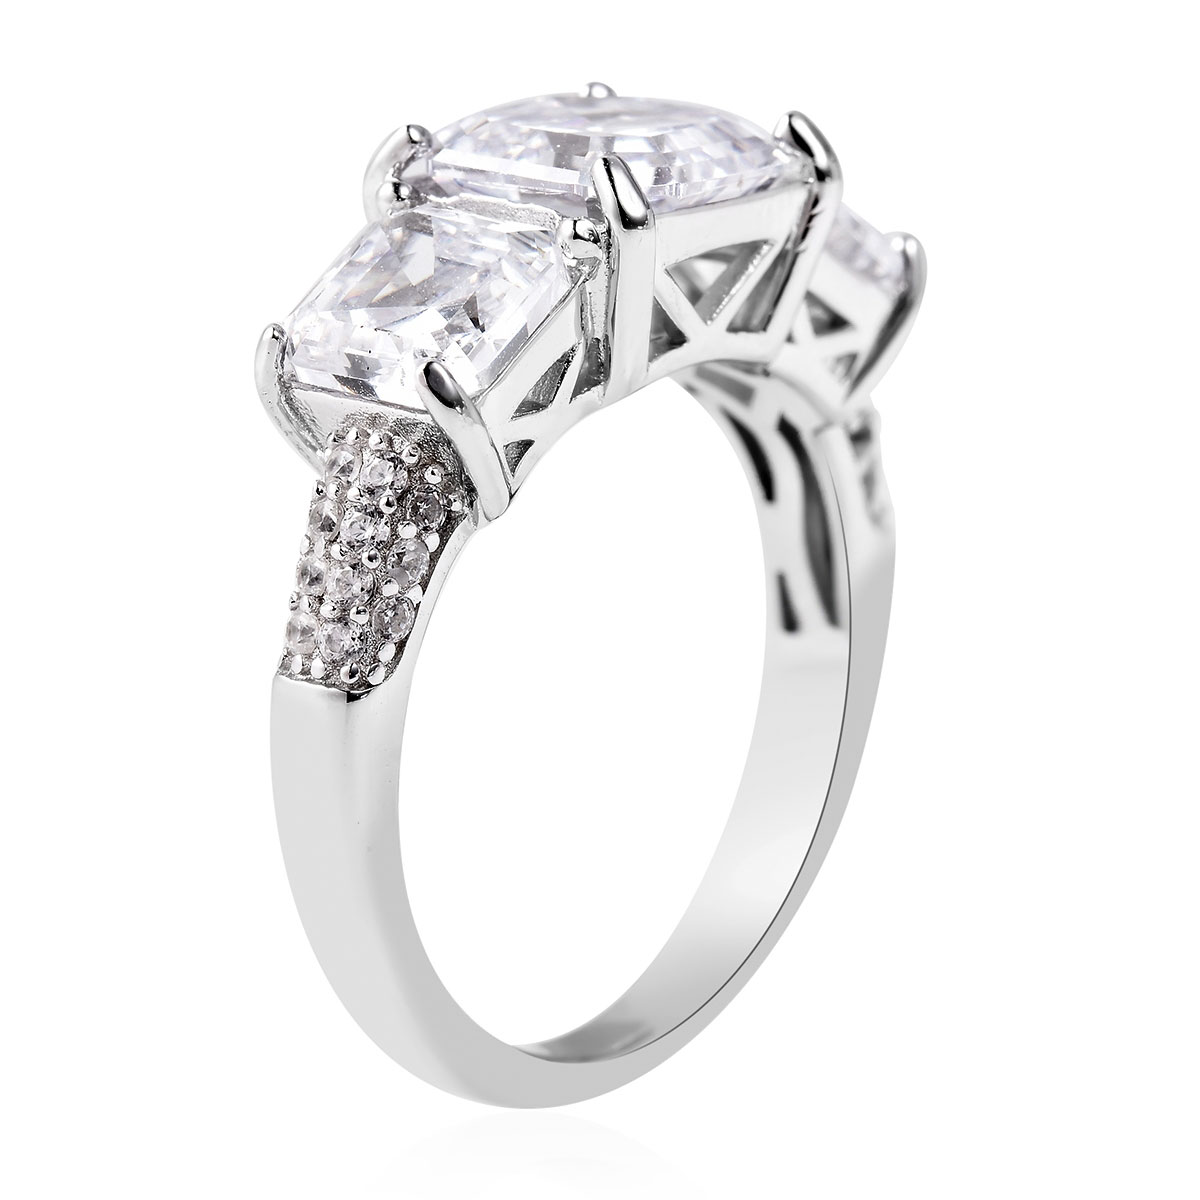 LUSTRO STELLA CZ Ring in Sterling Silver (Size 6.0)